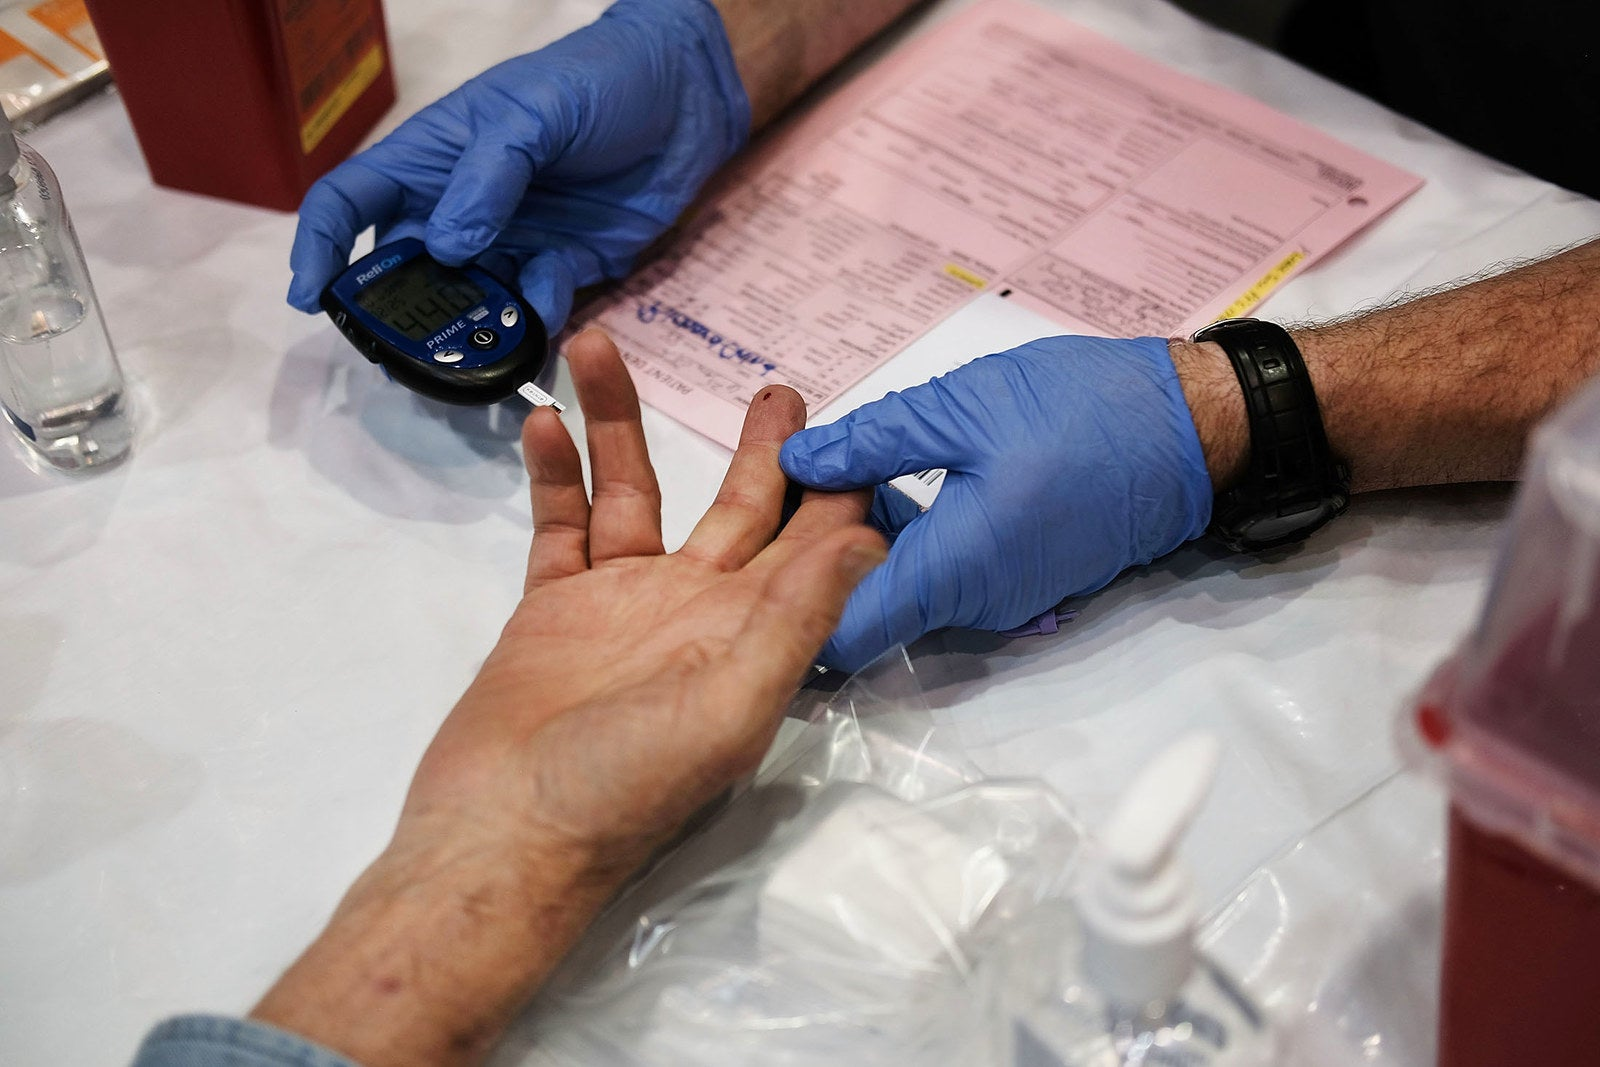 A man has his blood tested at the RAM clinic in Olean, New York, on June 10.